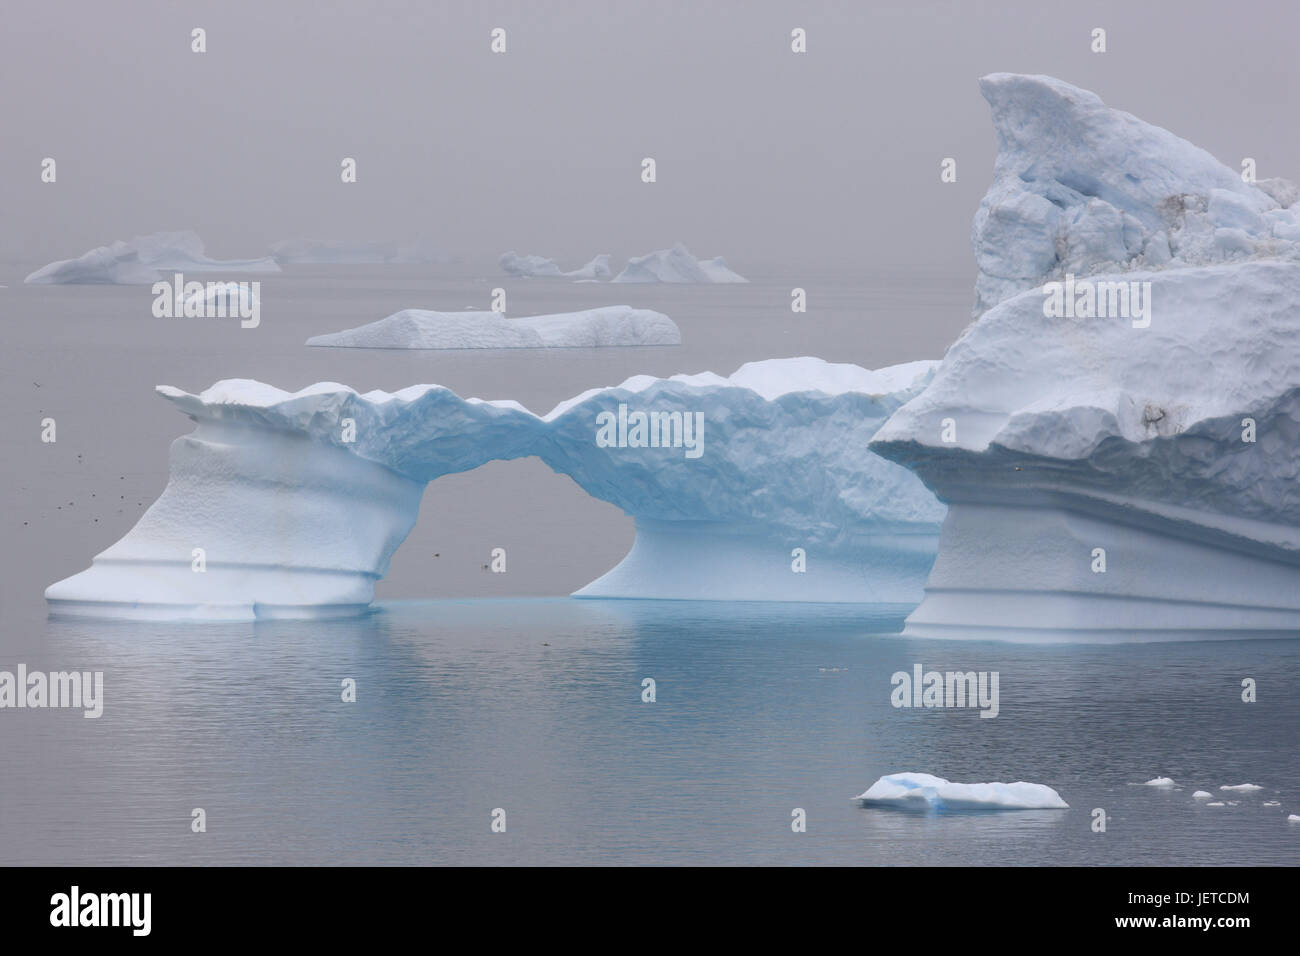 Greenland, Uummannaq, coast, fjord, icebergs, foggy, Northern Greenland, destination, sea, the Arctic, glacier ice, - Stock Image